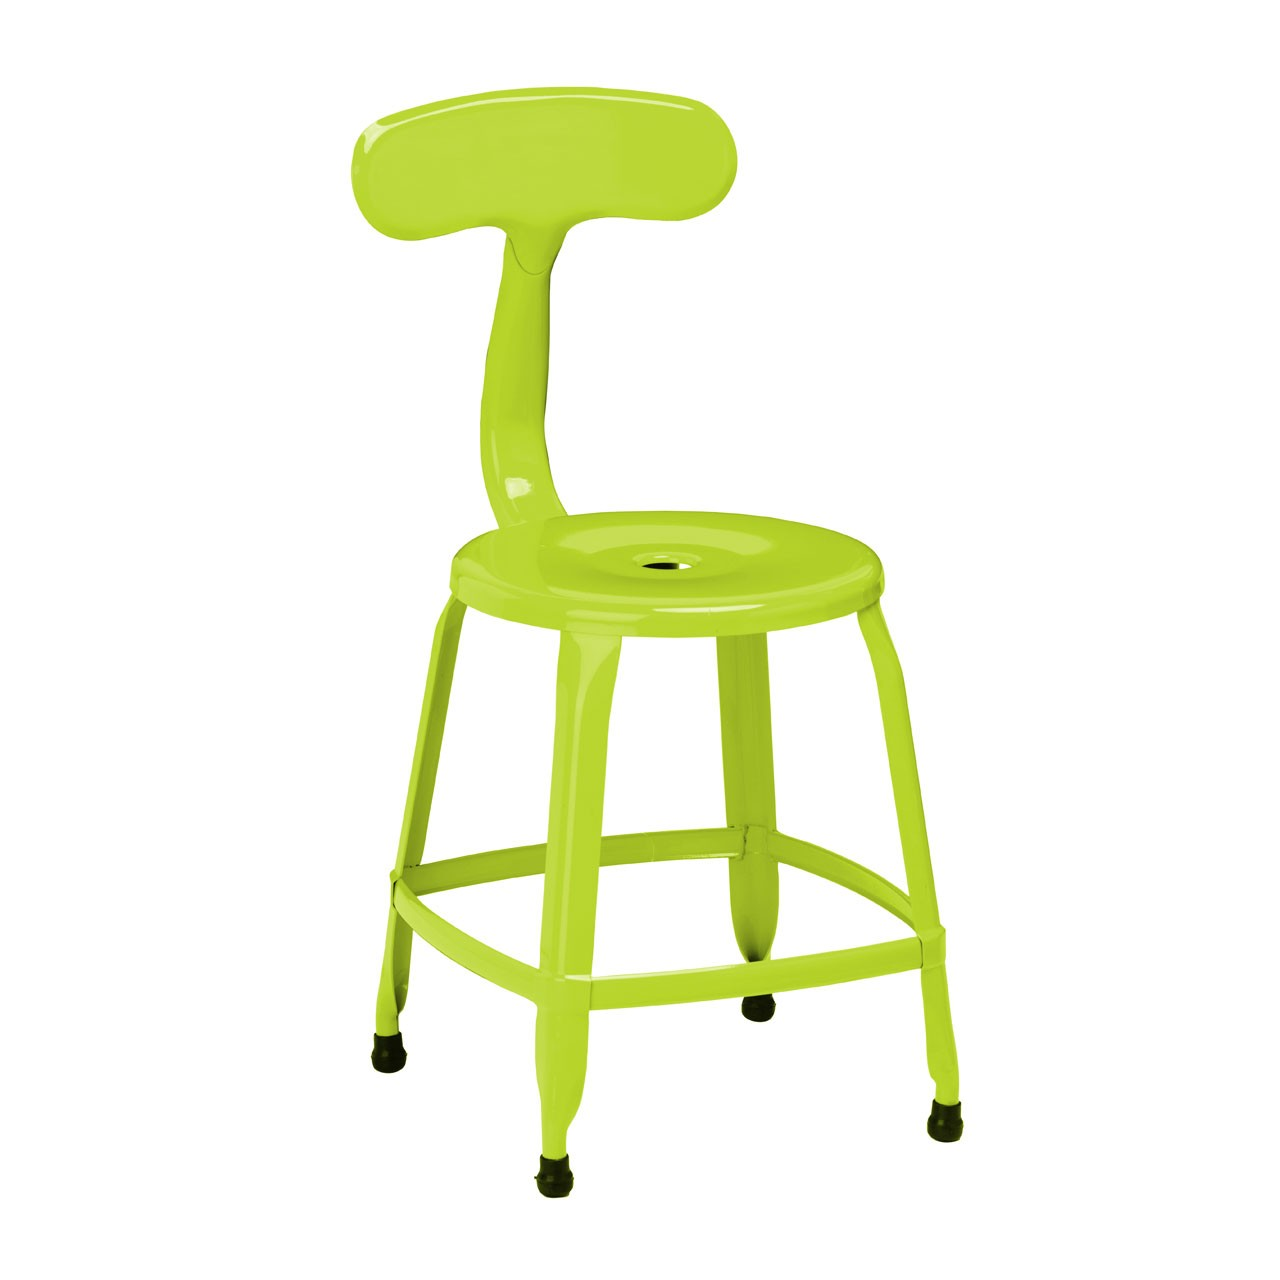 4 x Disc Chair Lime Green Powder Coated Metal